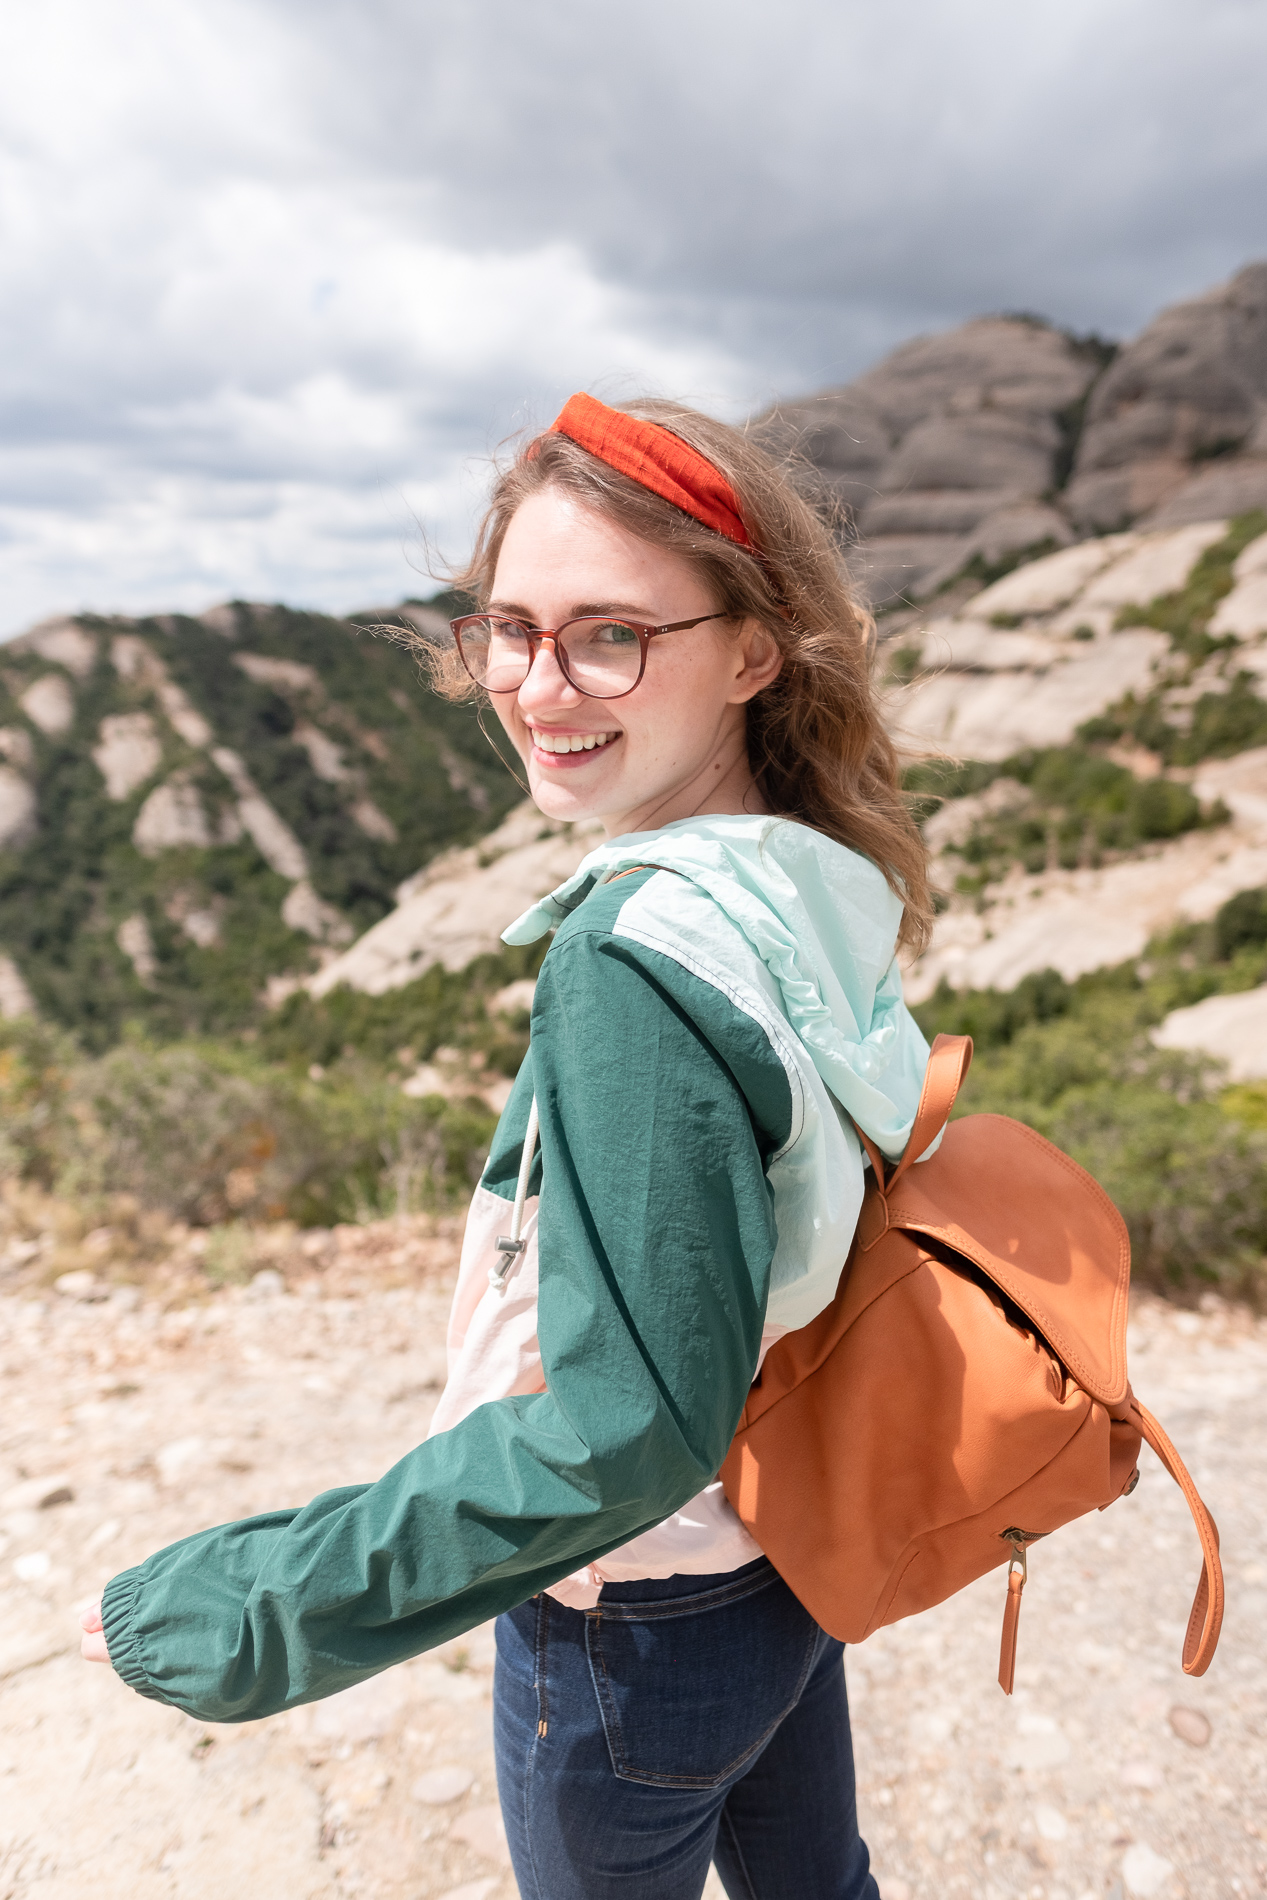 Woman with blonde hair and an orange headband and glasses smiles in the foreground, and we see the rocks of Montserrat in the background. She wears a colorblock parka and mini leather backpack.